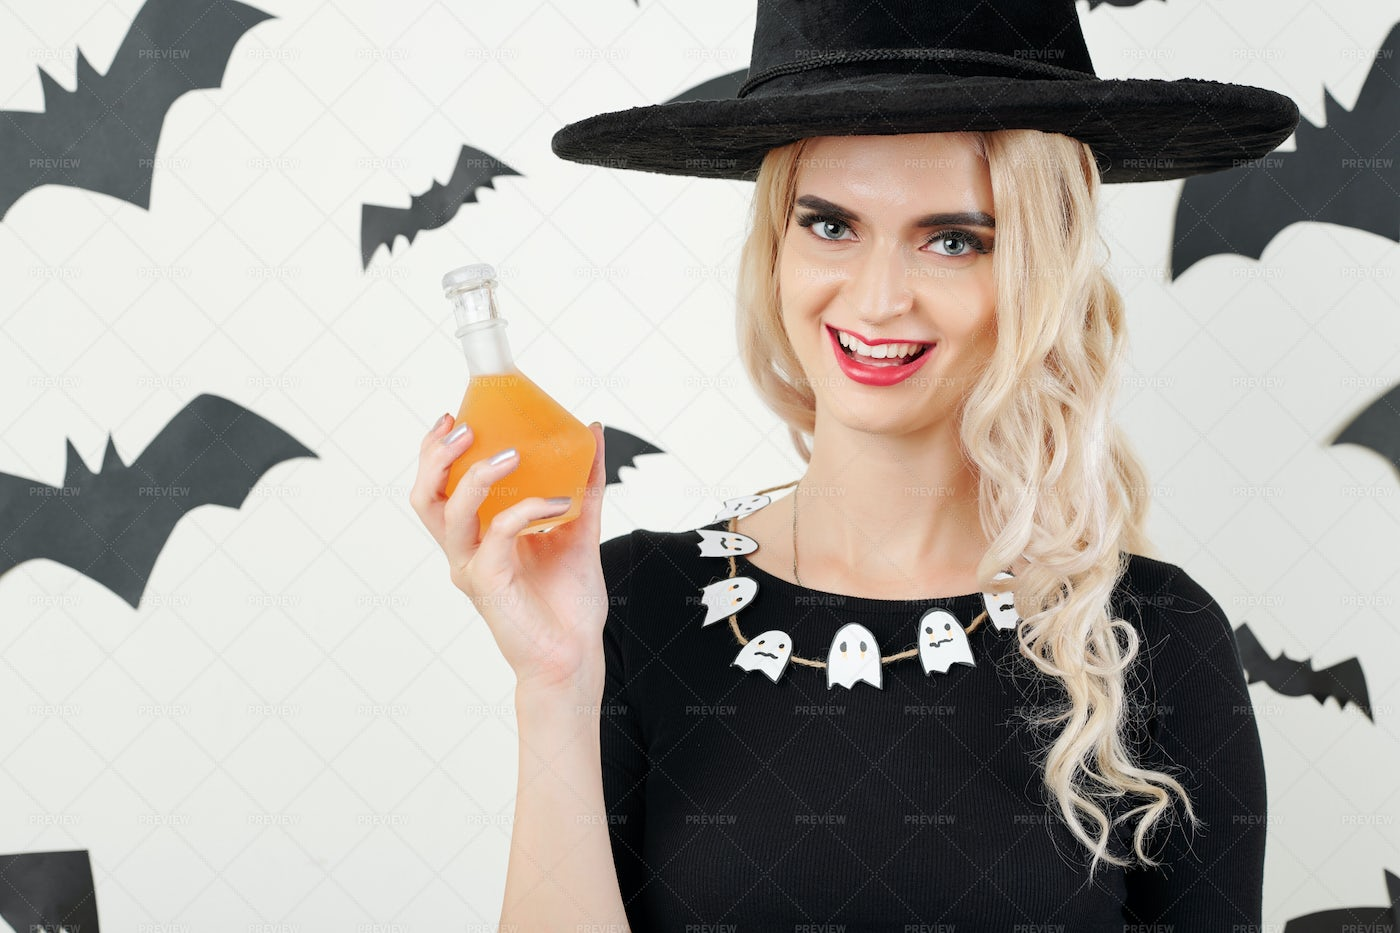 Happy With With Magic Potion: Stock Photos